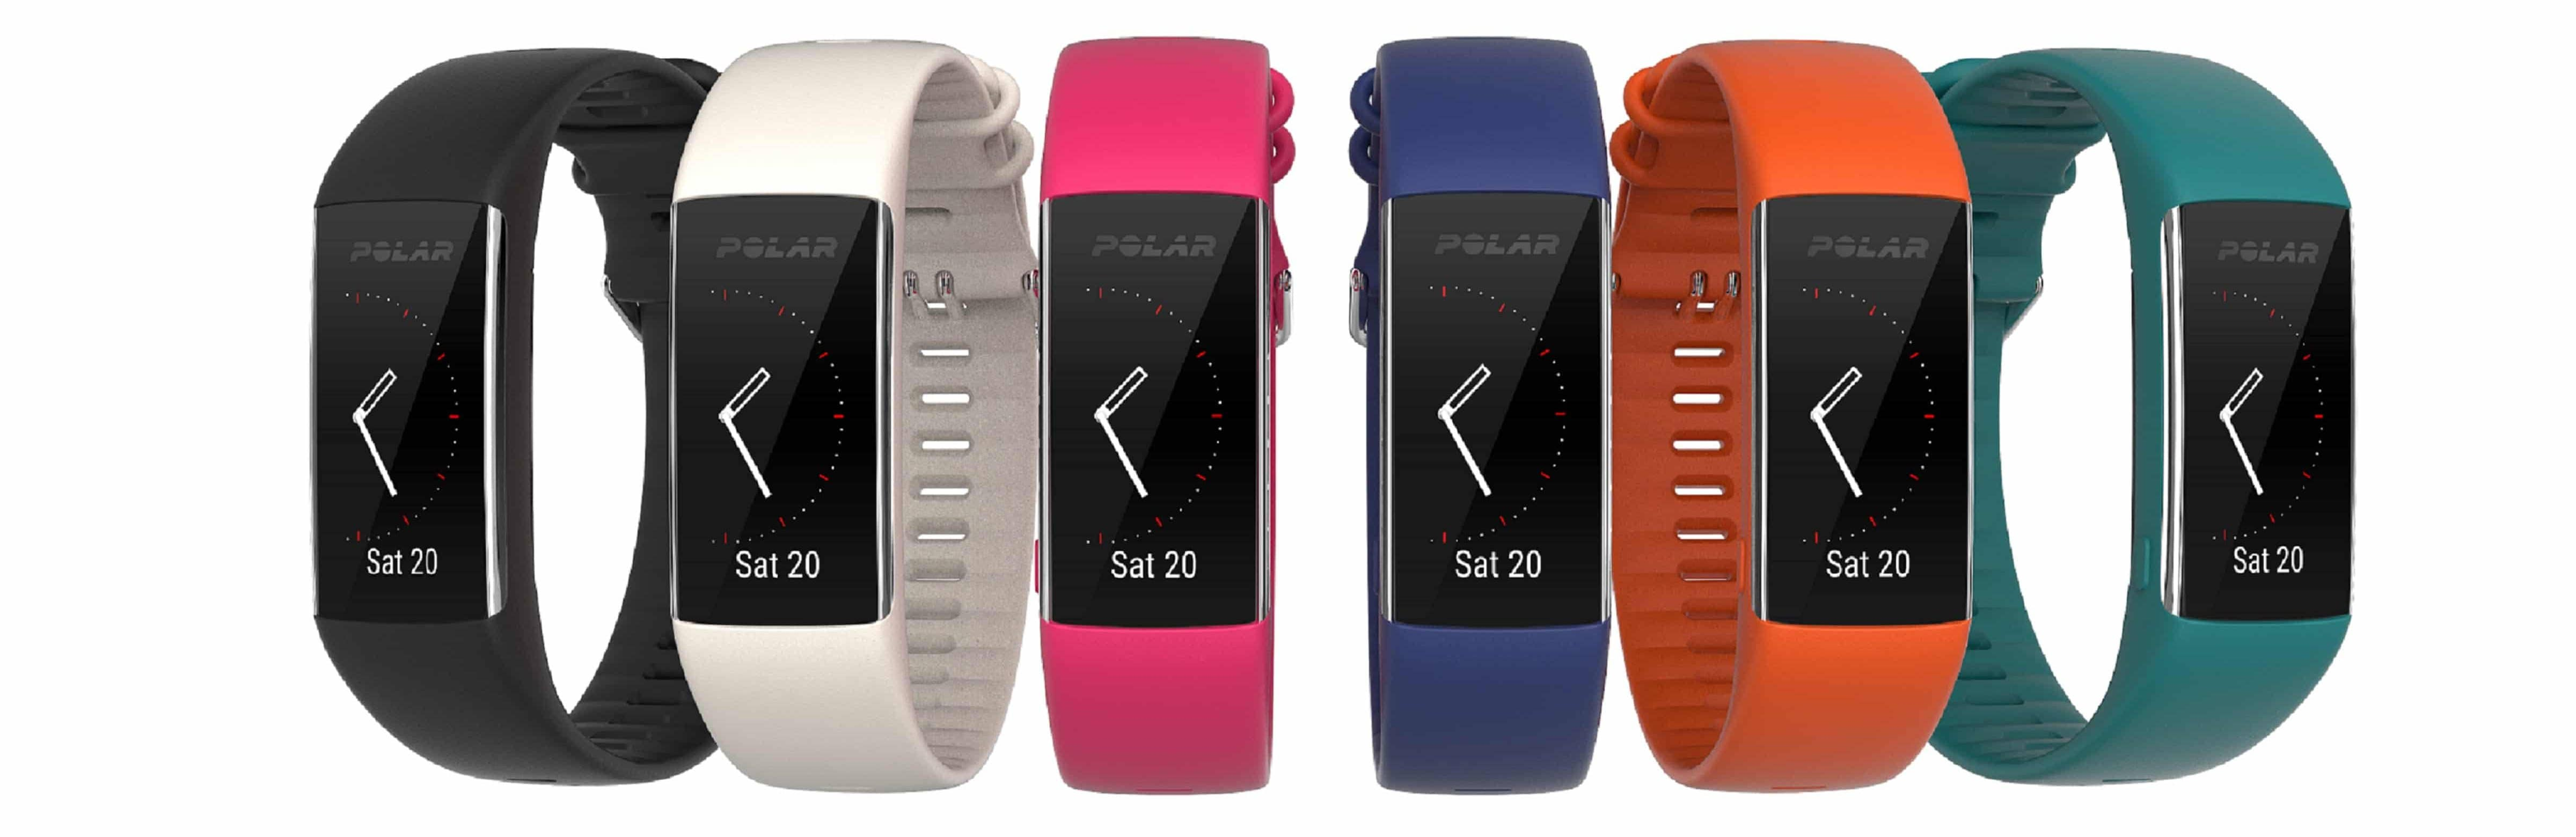 polar a370 comes with a 24 7 heart rate sensor and advanced sleep analytics 2 - Polar A370 comes with a 24/7 heart rate sensor and advanced sleep analytics